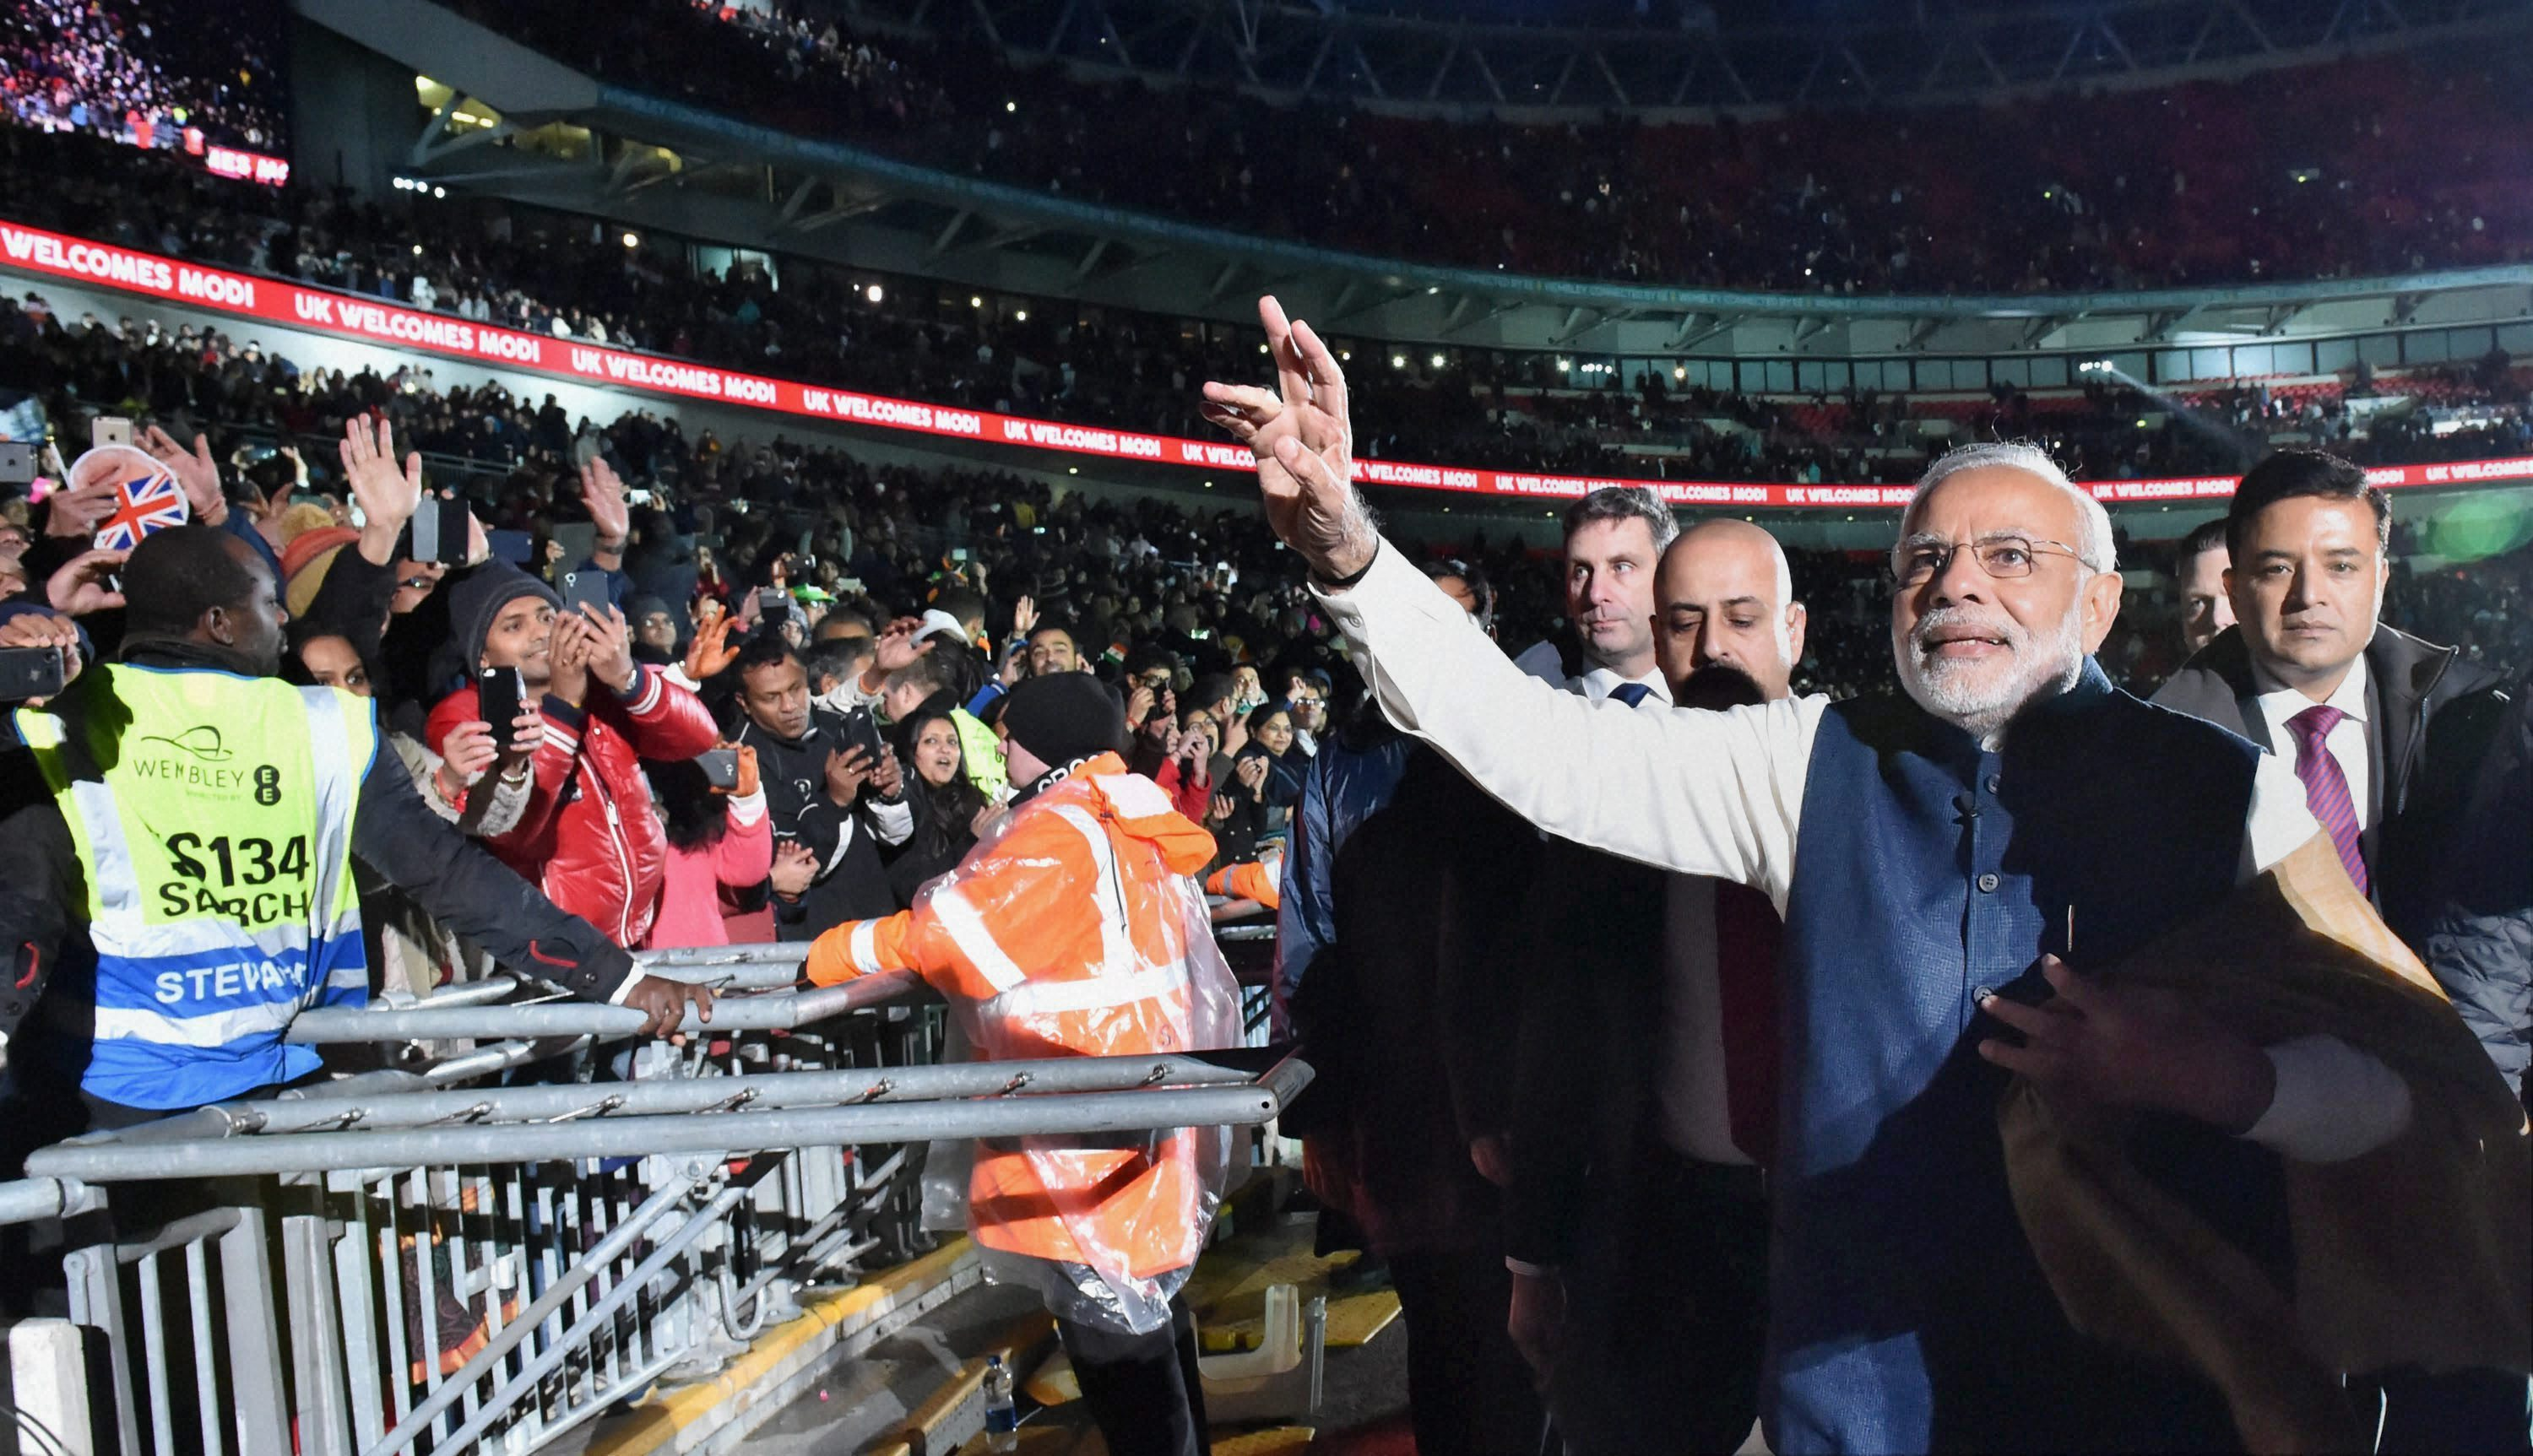 Prime Minister Narendra Modi waves as he leaves Wembley stadium after addressing a rally of British Indians. Credit: PTI